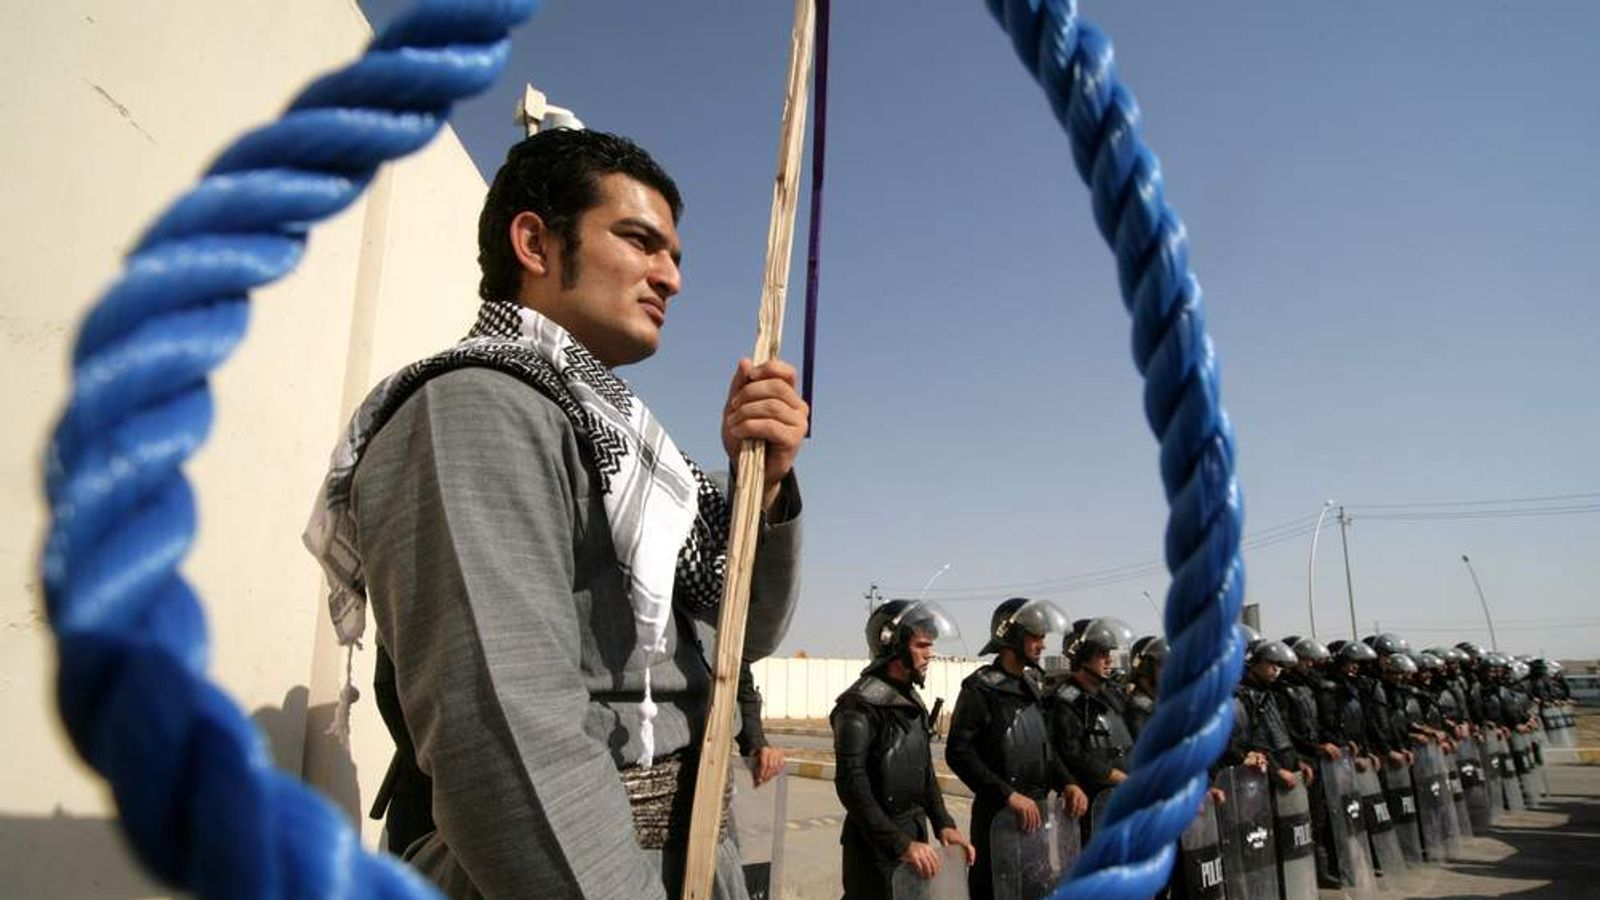 A protest against the execution of Kurdish rebels in Iran.